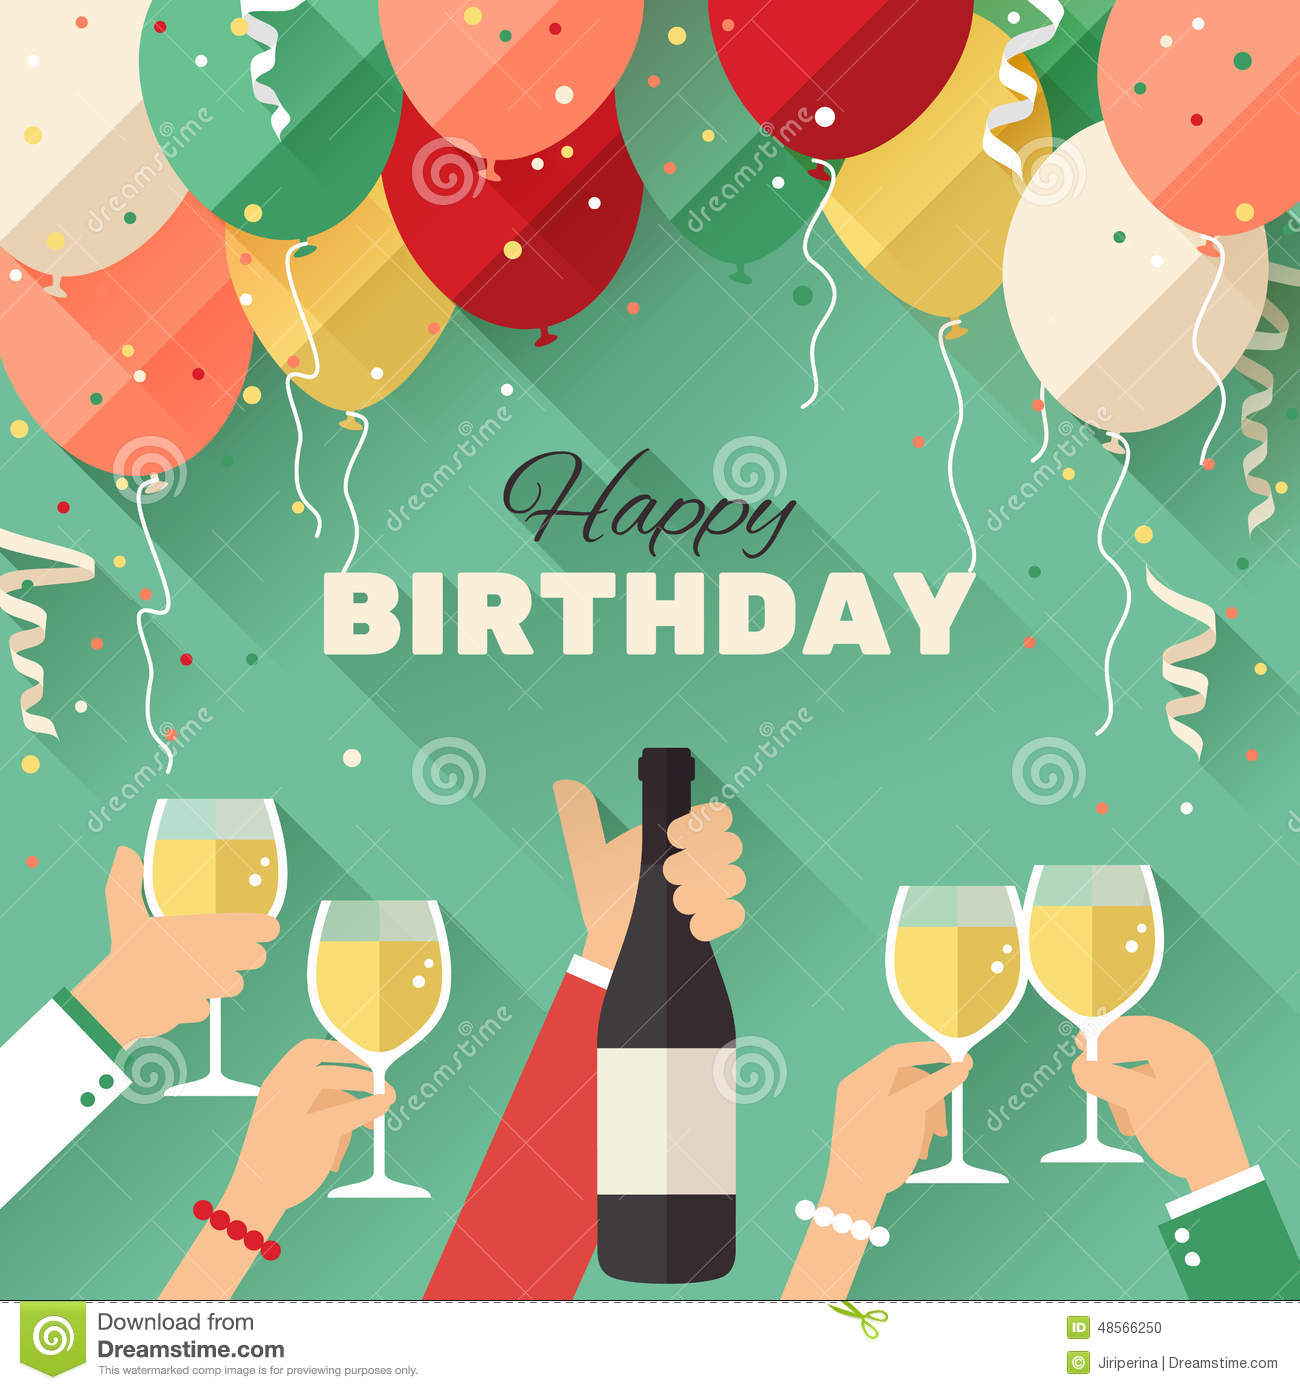 birthday wishes posters ; birthday-party-announcement-poster-flyer-greeting-card-flat-style-48566250